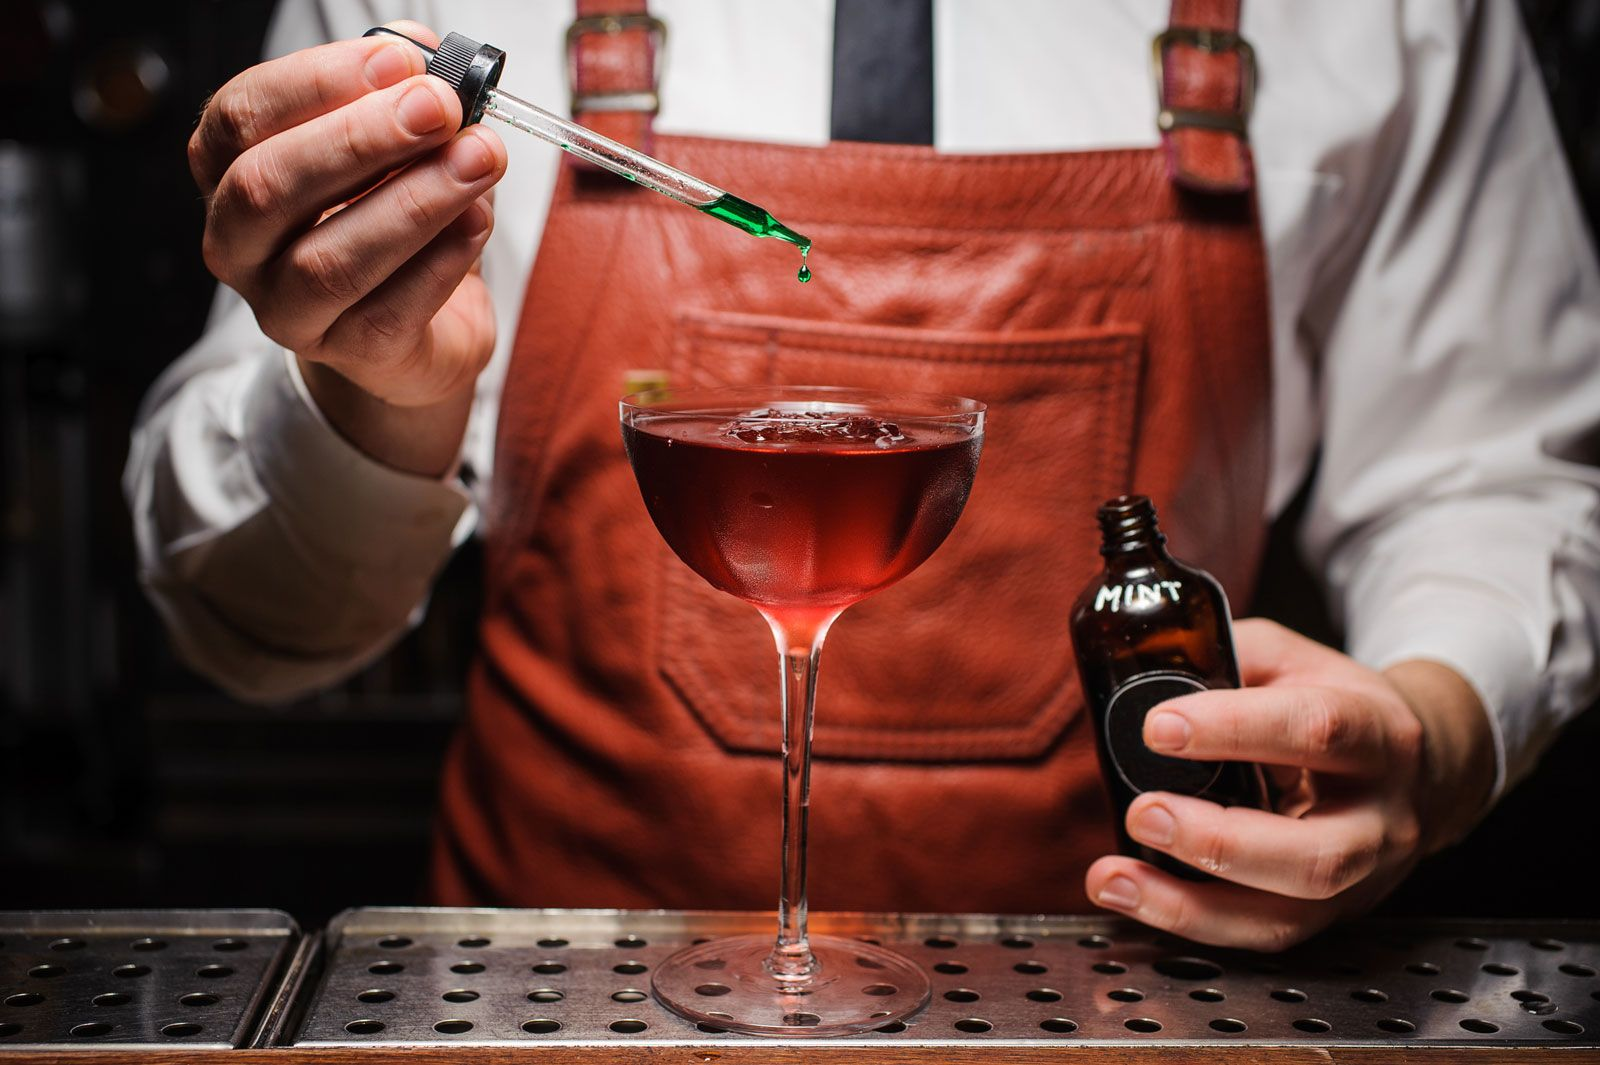 Essentials Needed To Become Your Own Mixologist Mixologist How To Make Drinks Craft Spirits